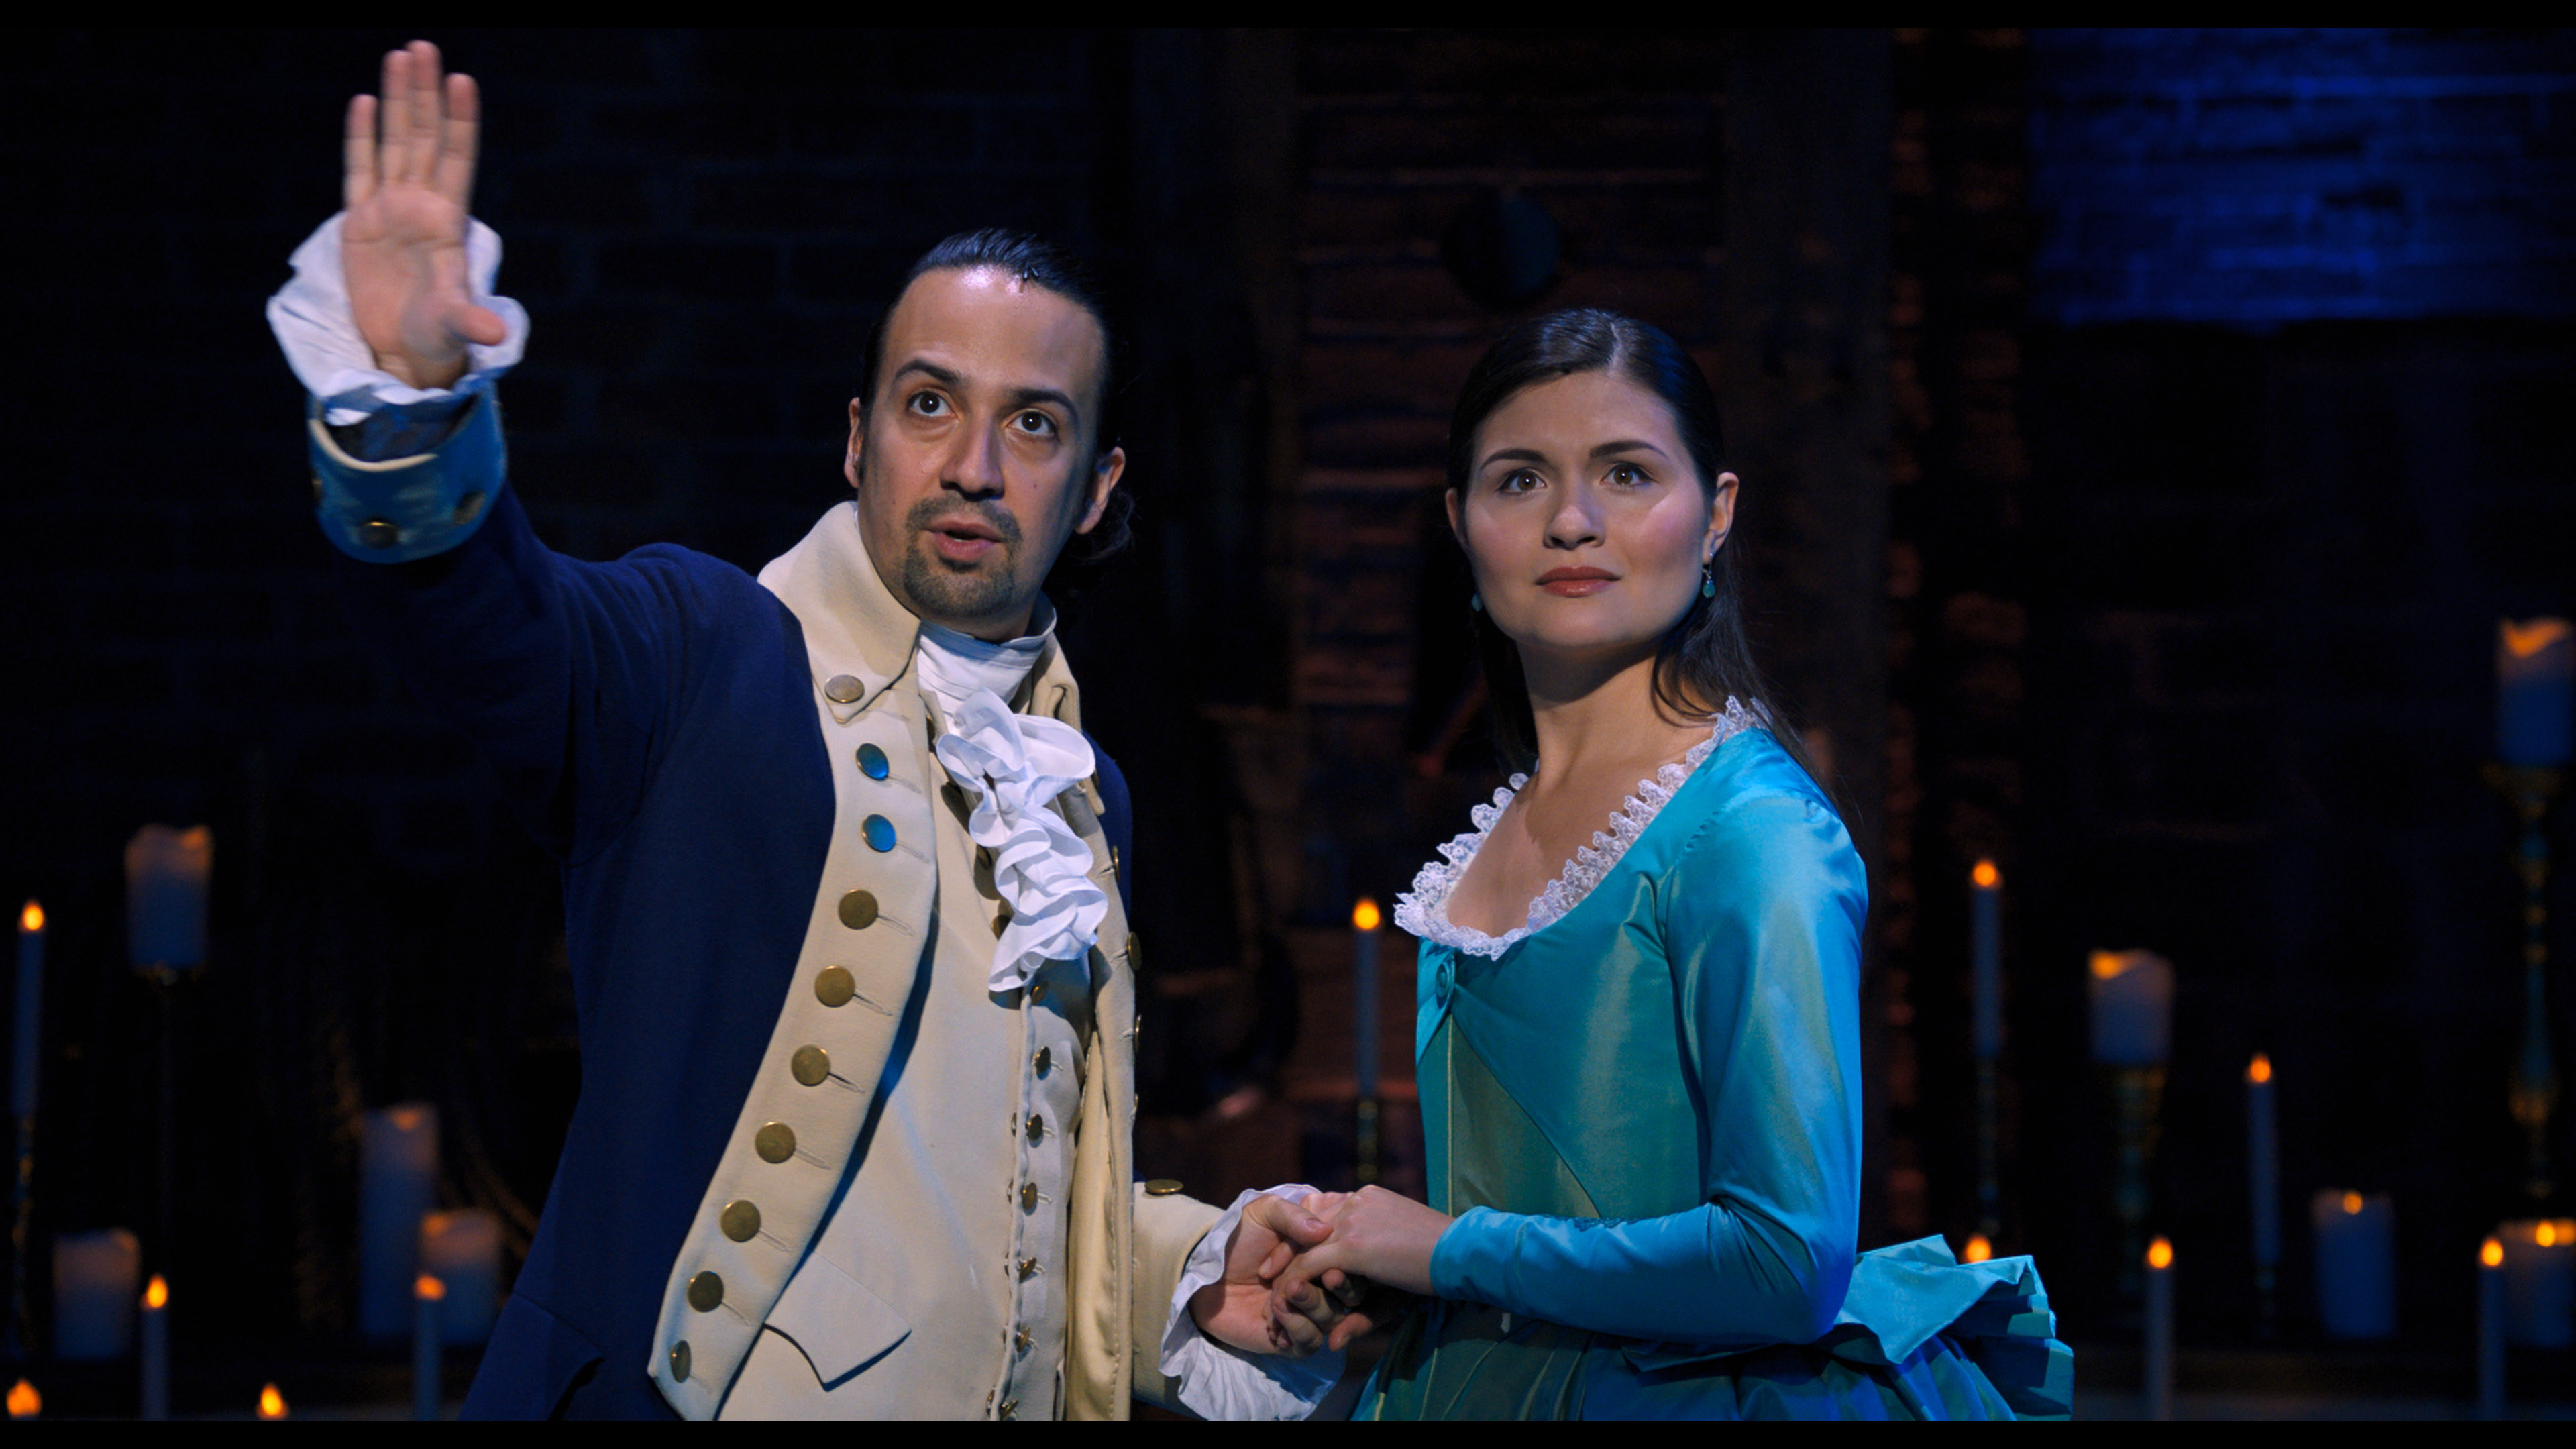 ART OF THE CUT with the editor of Hamilton 12